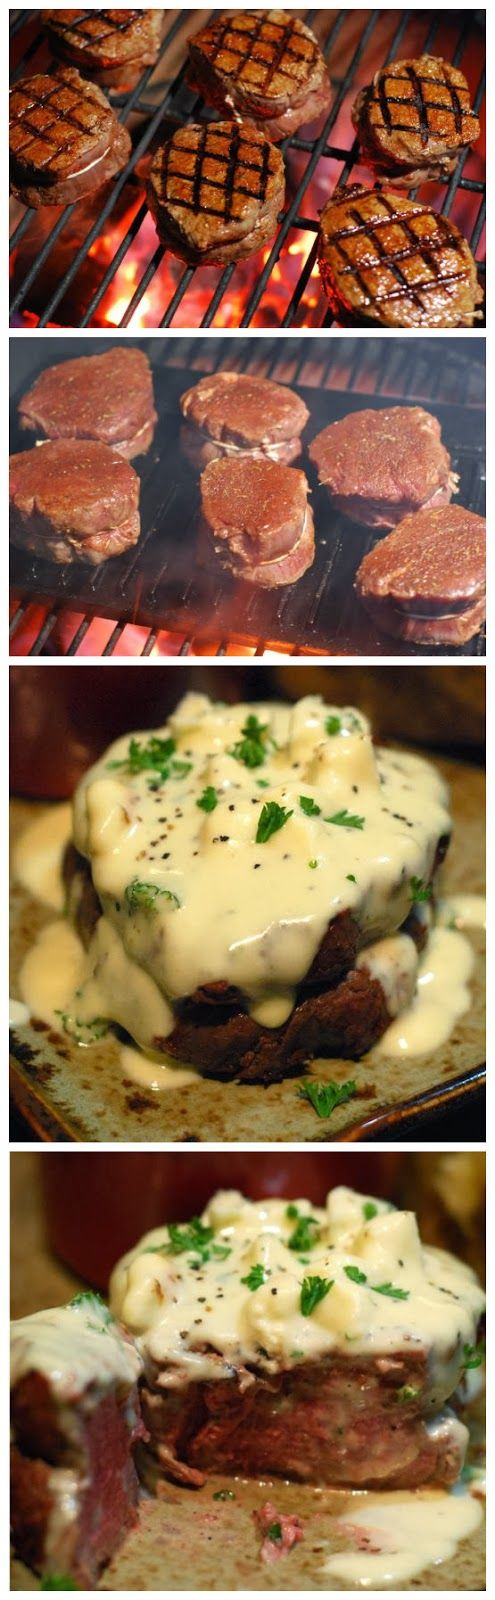 Filet with Gorgonzola Sauce